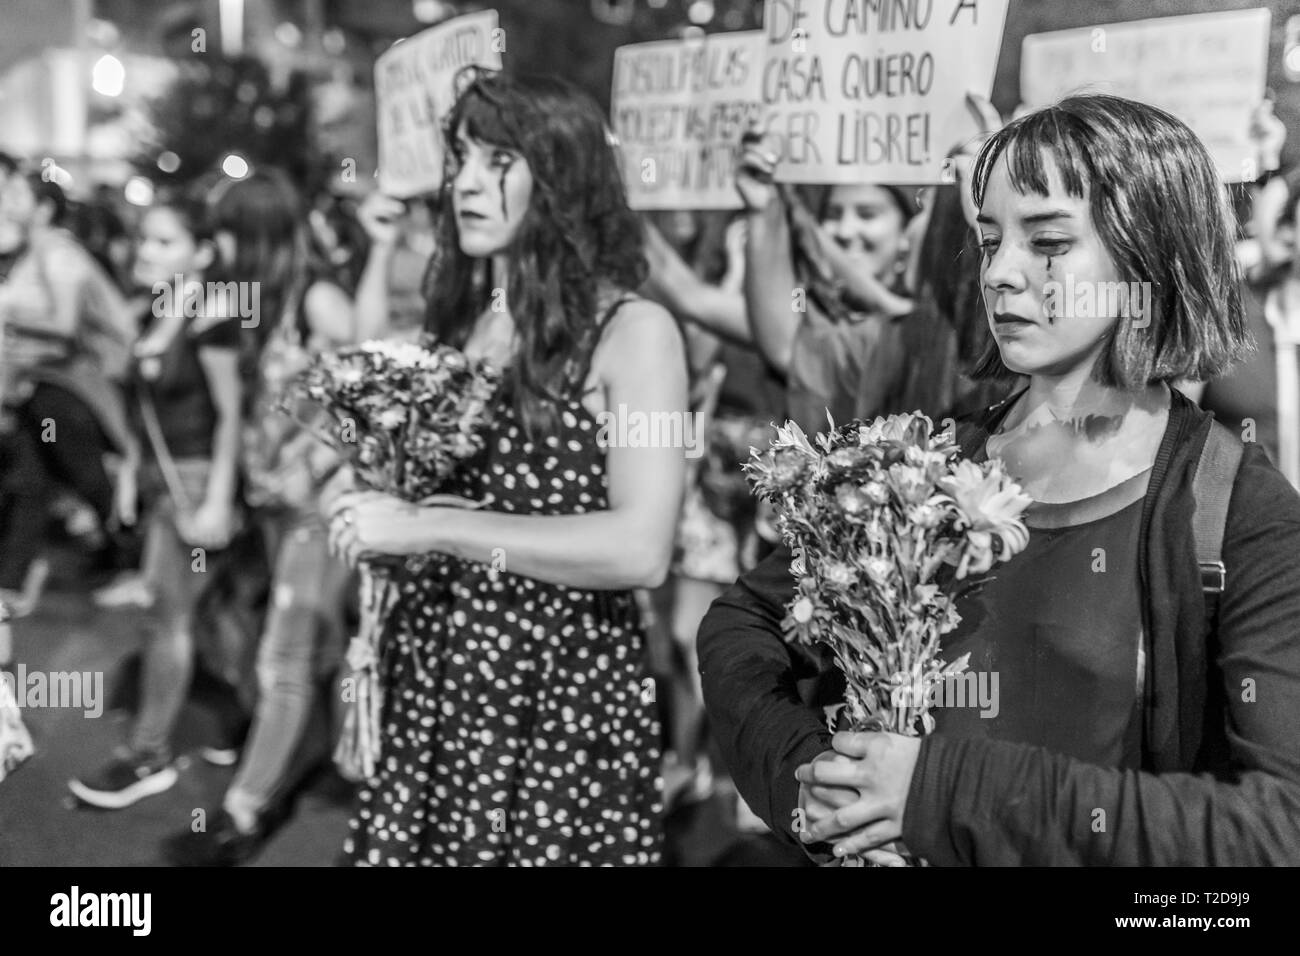 International Women's Day 8 March Feminist girls urban tribes with death costume clothes in women's day protest at Santiago, Chile, city centre street - Stock Image